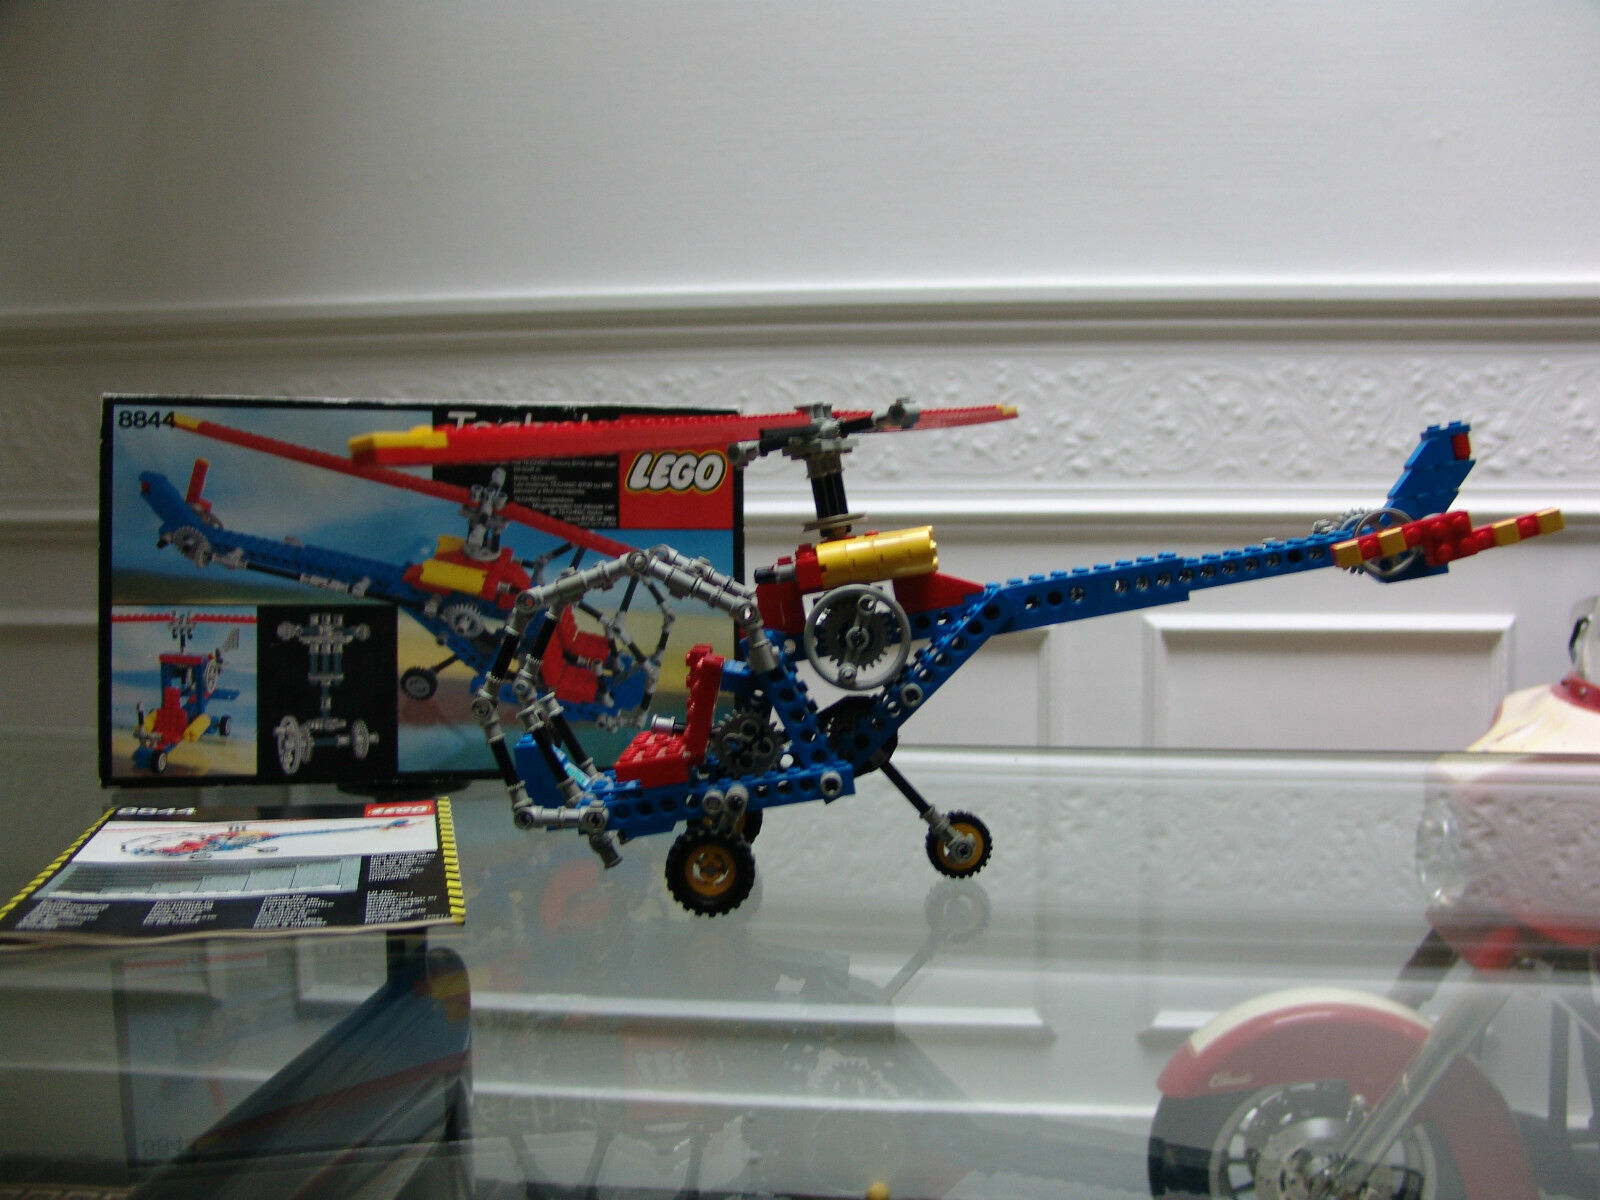 1981 LEGO Technic bluee helicopter with box and instructions